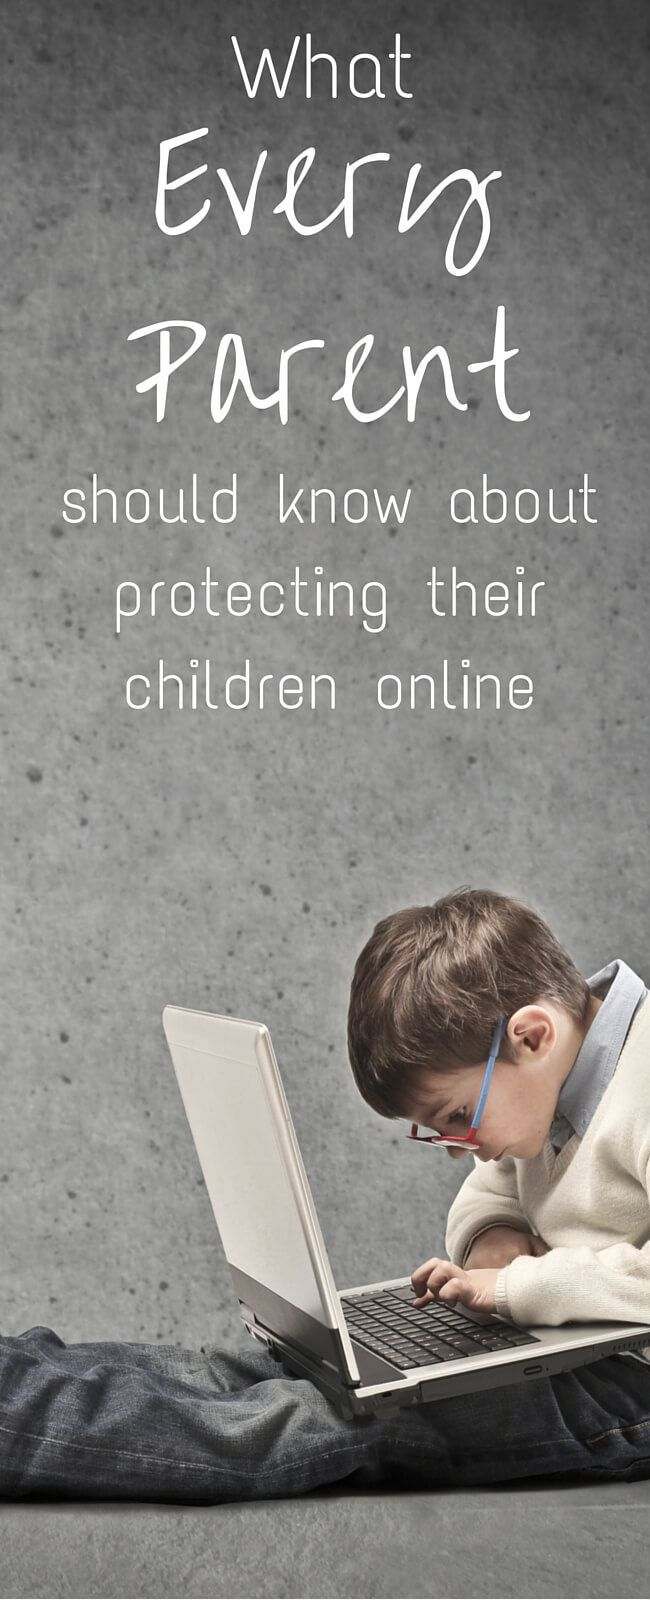 The Internet is a danger to children